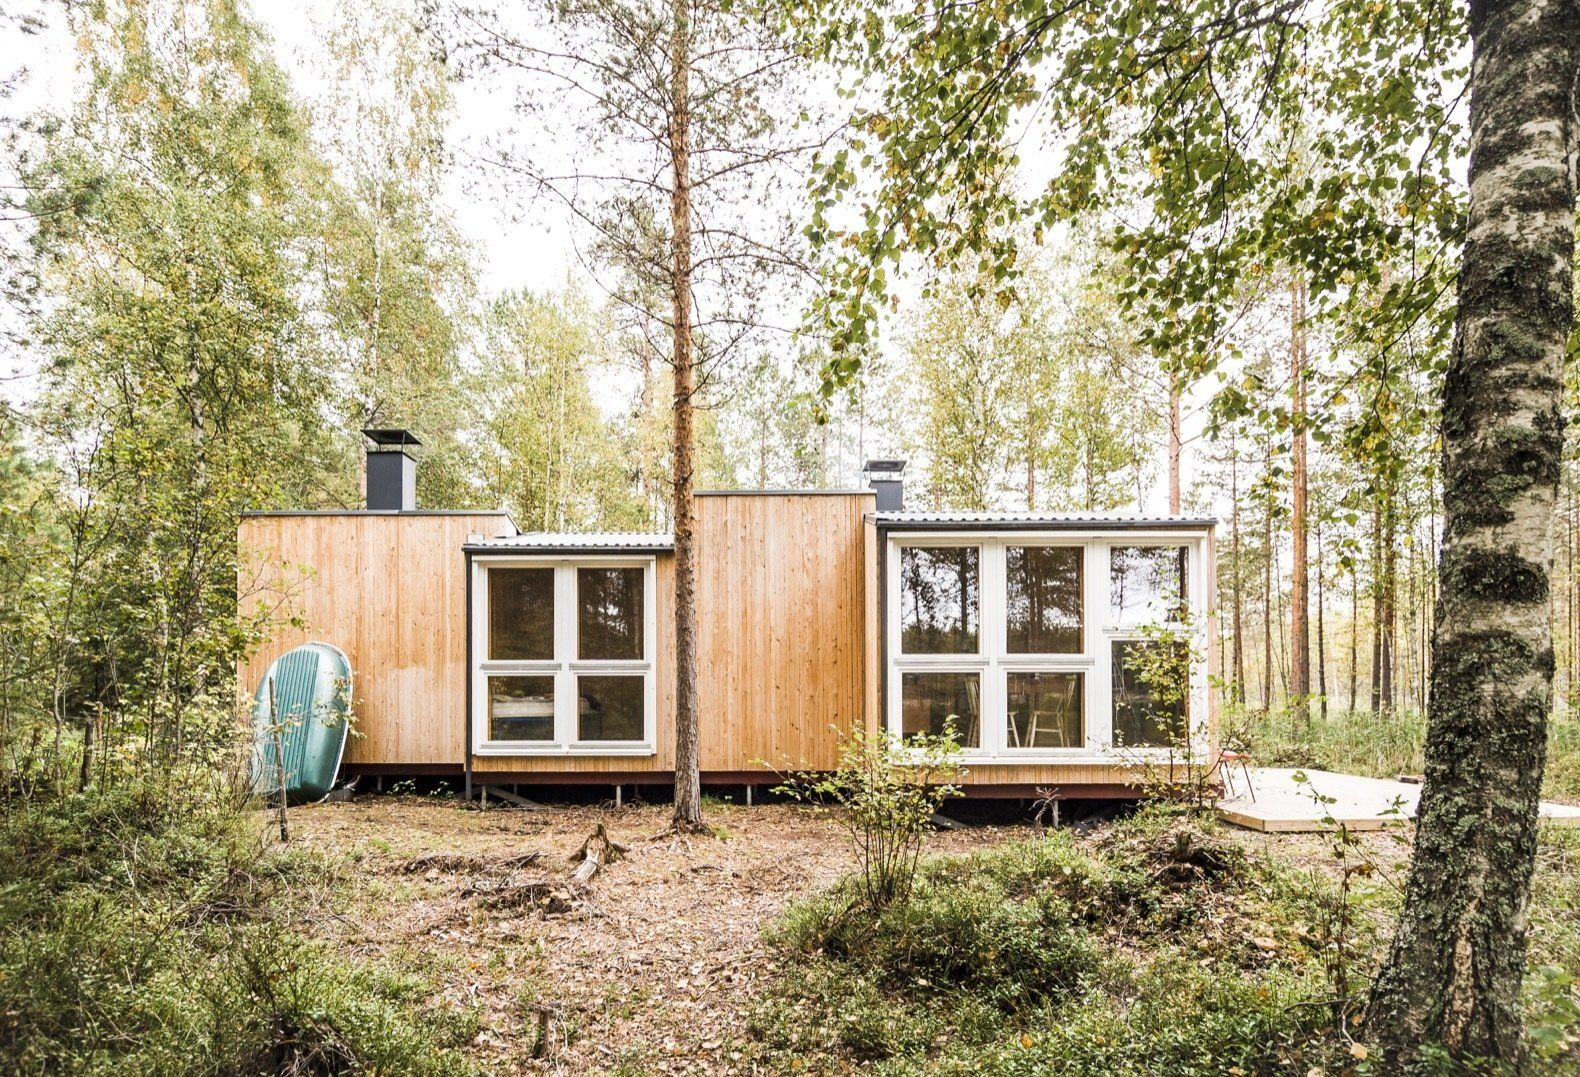 Small But Fine Cabin By Studio Politaire With Images House In The Woods Prefab Cabins Cabins In The Woods